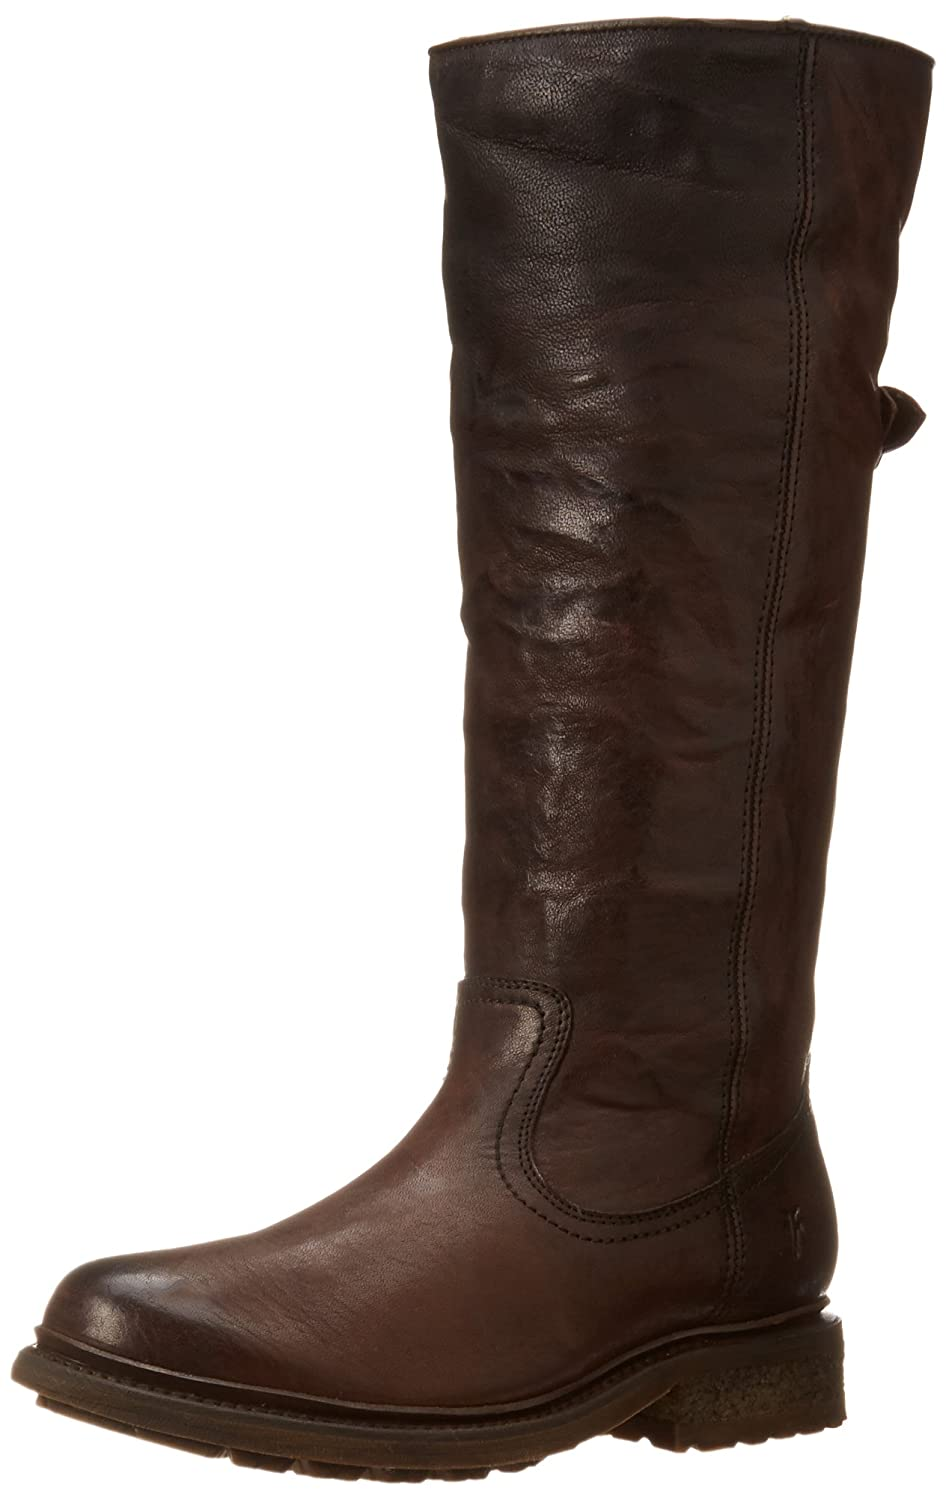 FRYE Women's Valerie Sherling Pull-On Riding Boot B00IMJMDE2 8.5 B(M) US|Dark Brown-75007